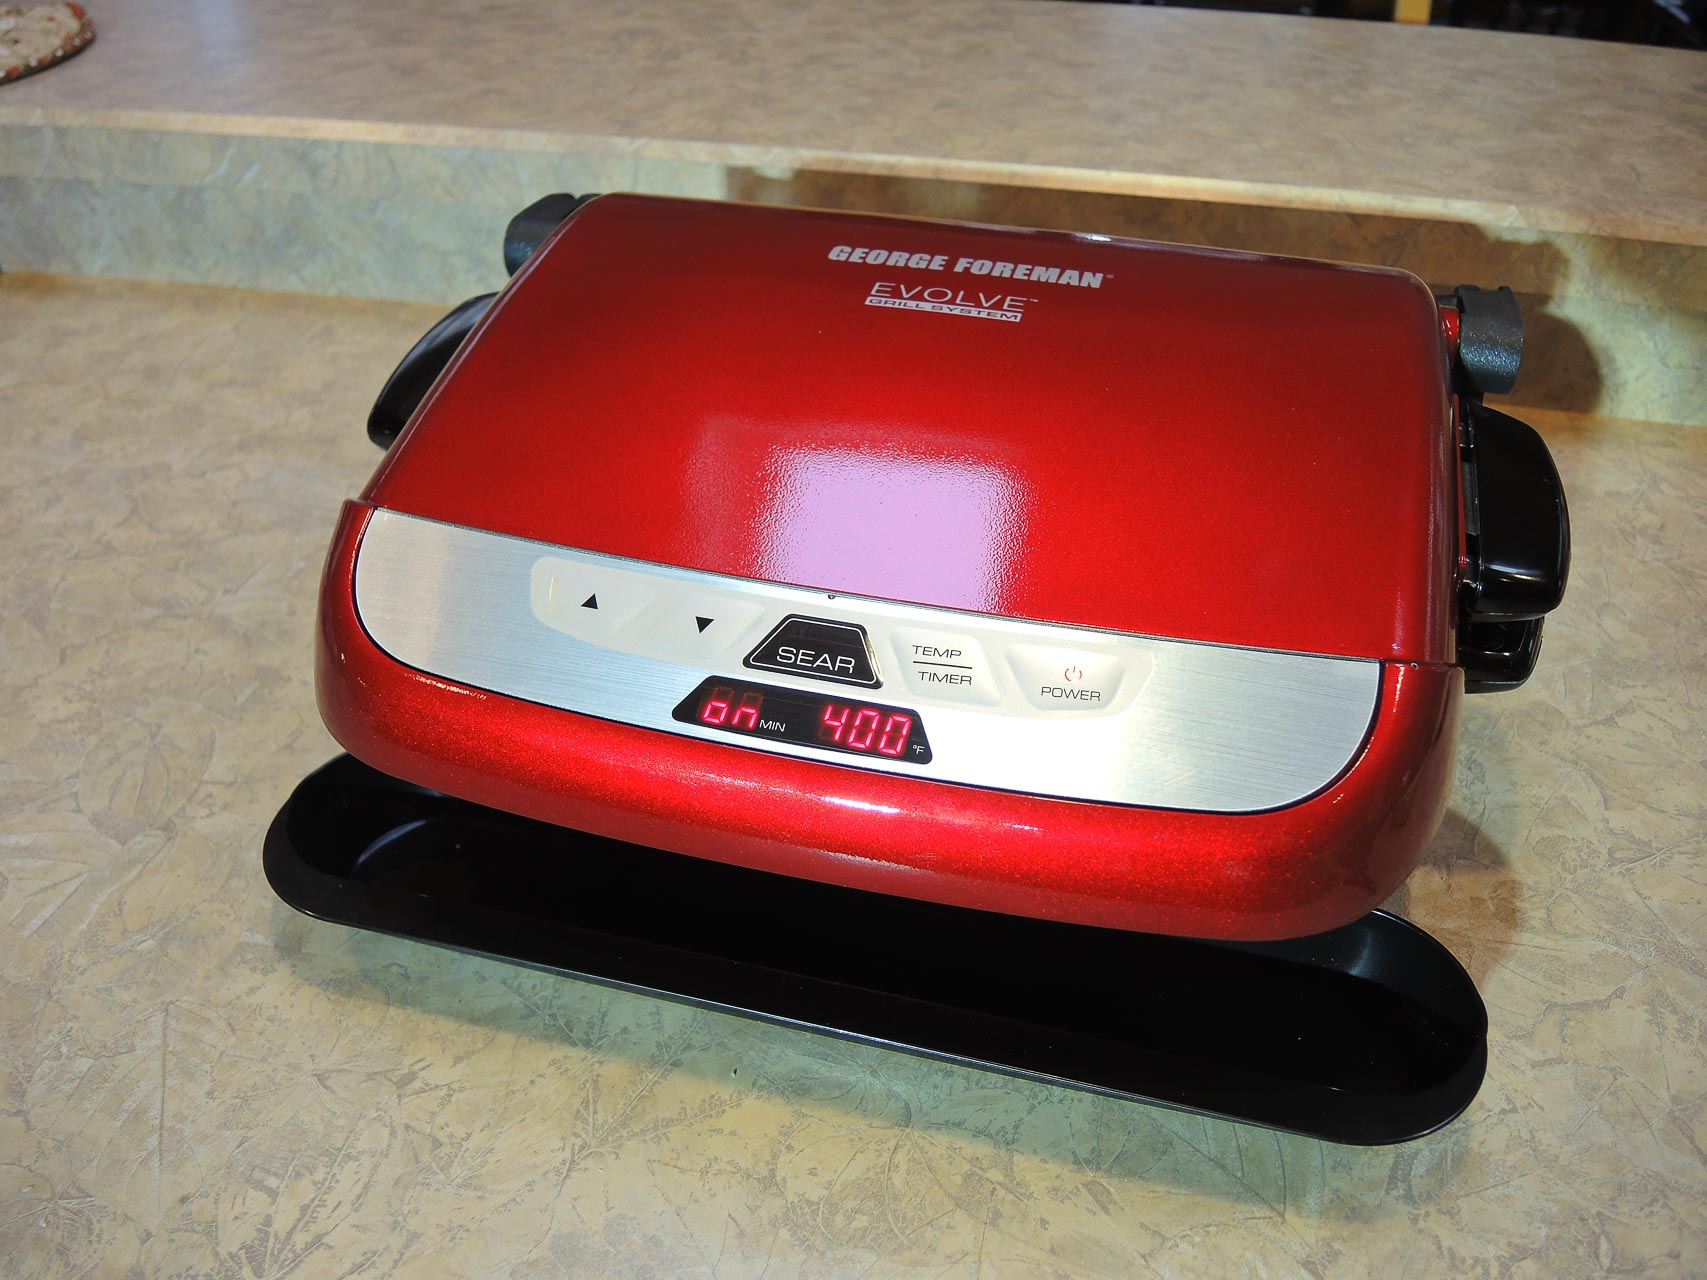 George foreman evolve grill versatility you ll flip for - George foreman evolve grill ...